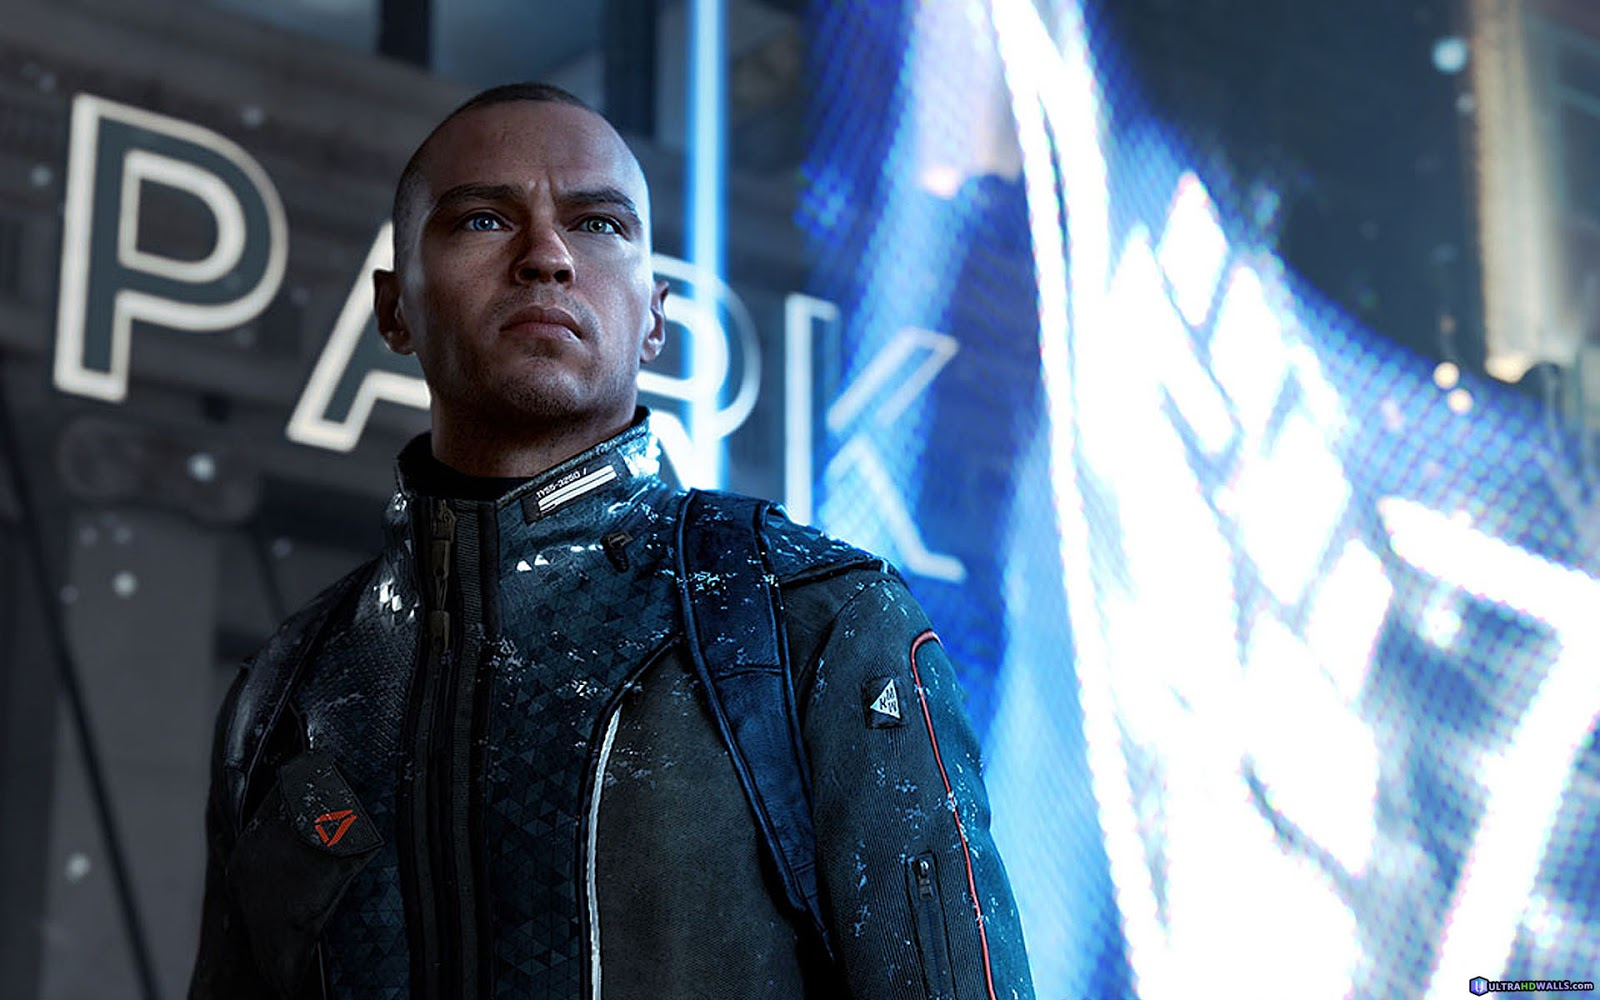 Games Wallpapers Detroit Become Human Game Hd Backgrounds